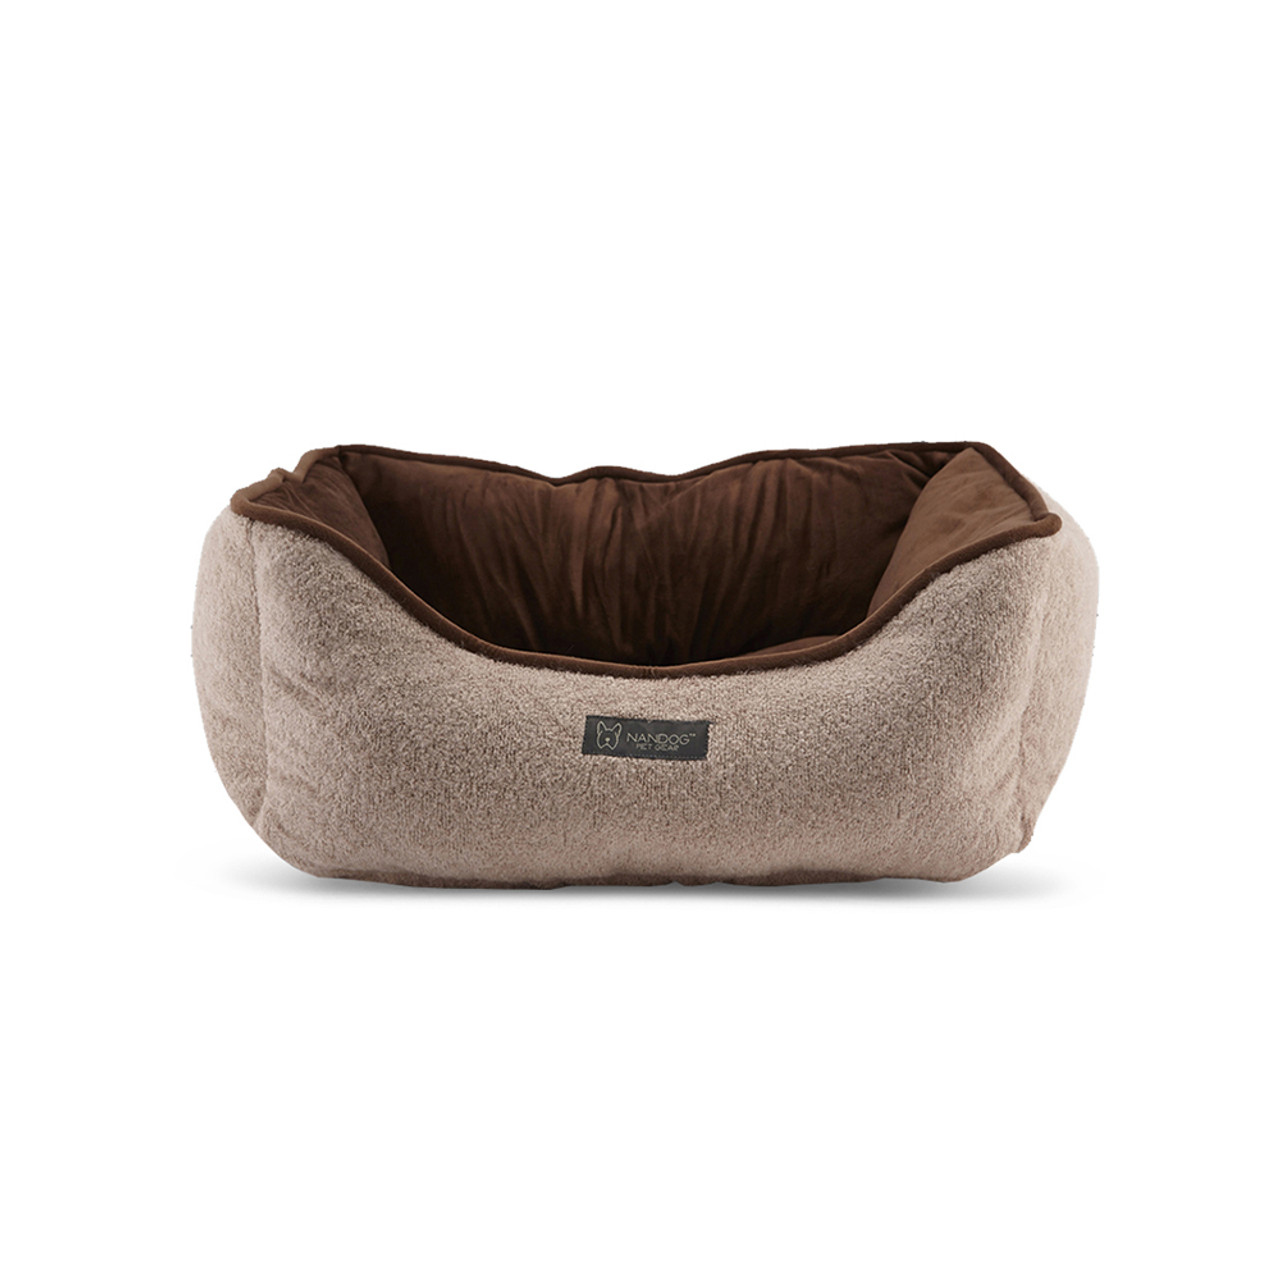 NanDog Tan Cashmere Plush Pet Bed